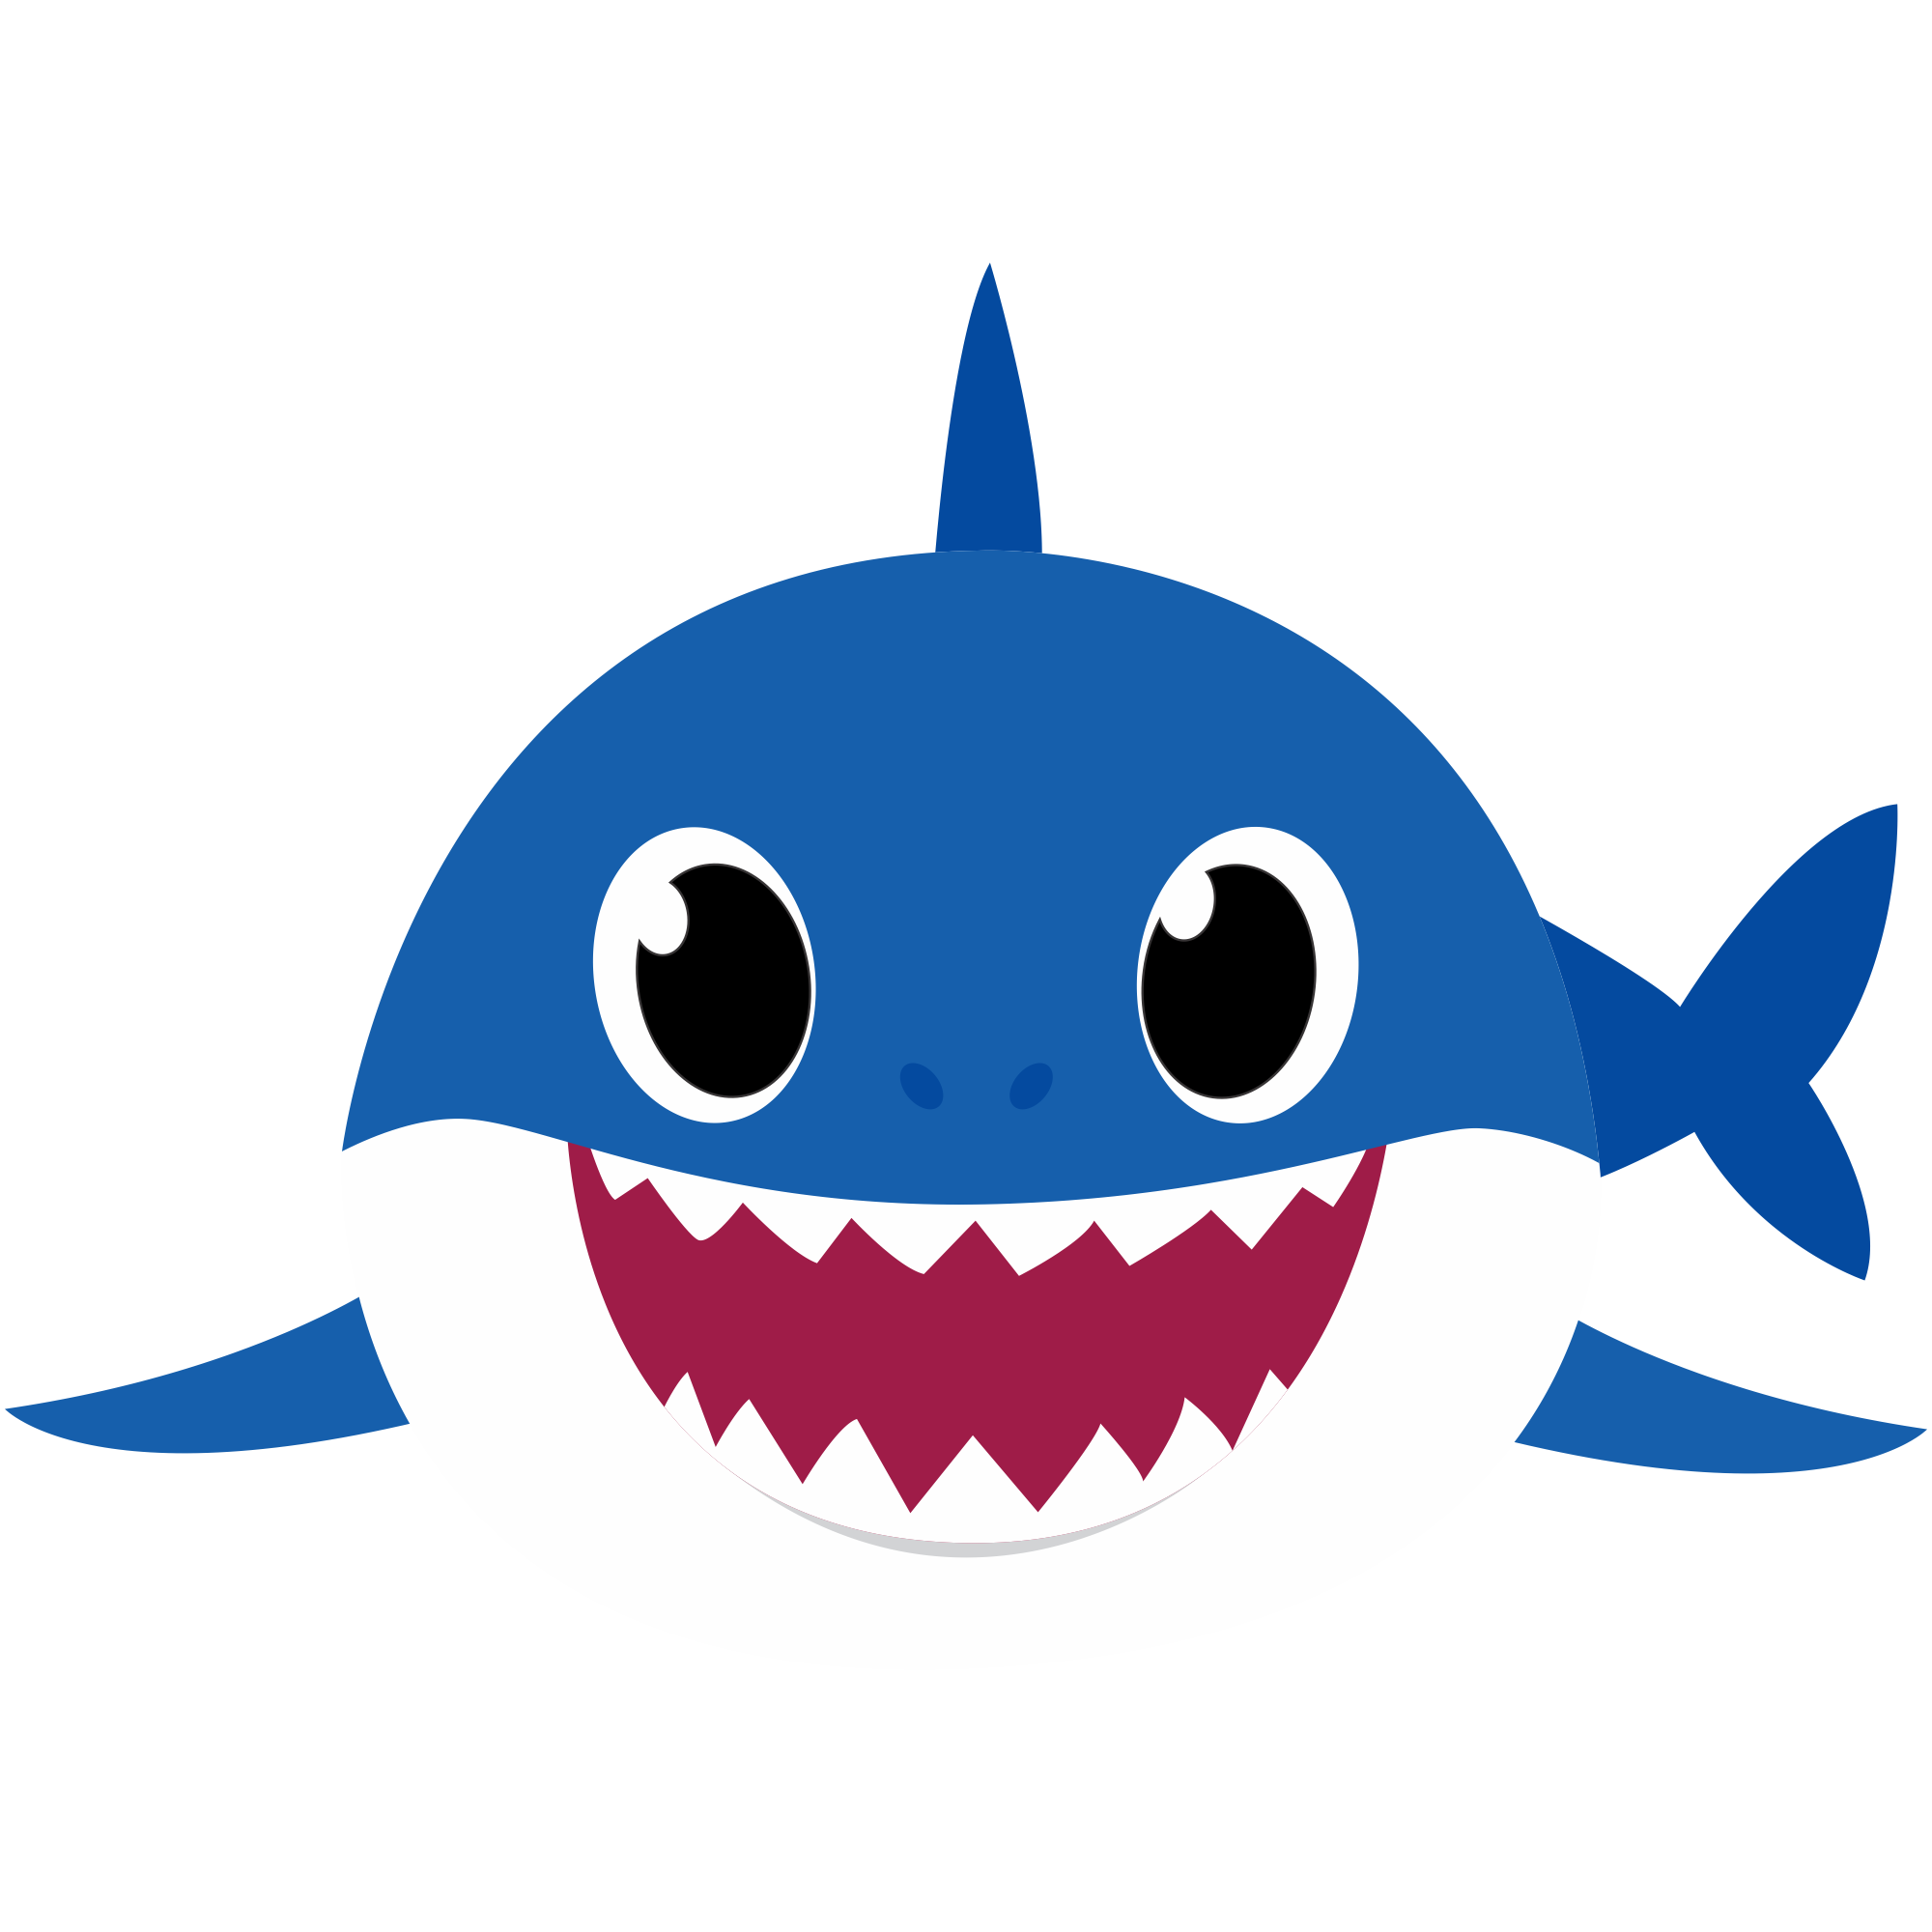 Free clipart of shark eyes and teeth png Cartoon,Fish,Mouth,Eye,Smile,Fish,Clip art,Illustration,Jaw,Graphics ... png